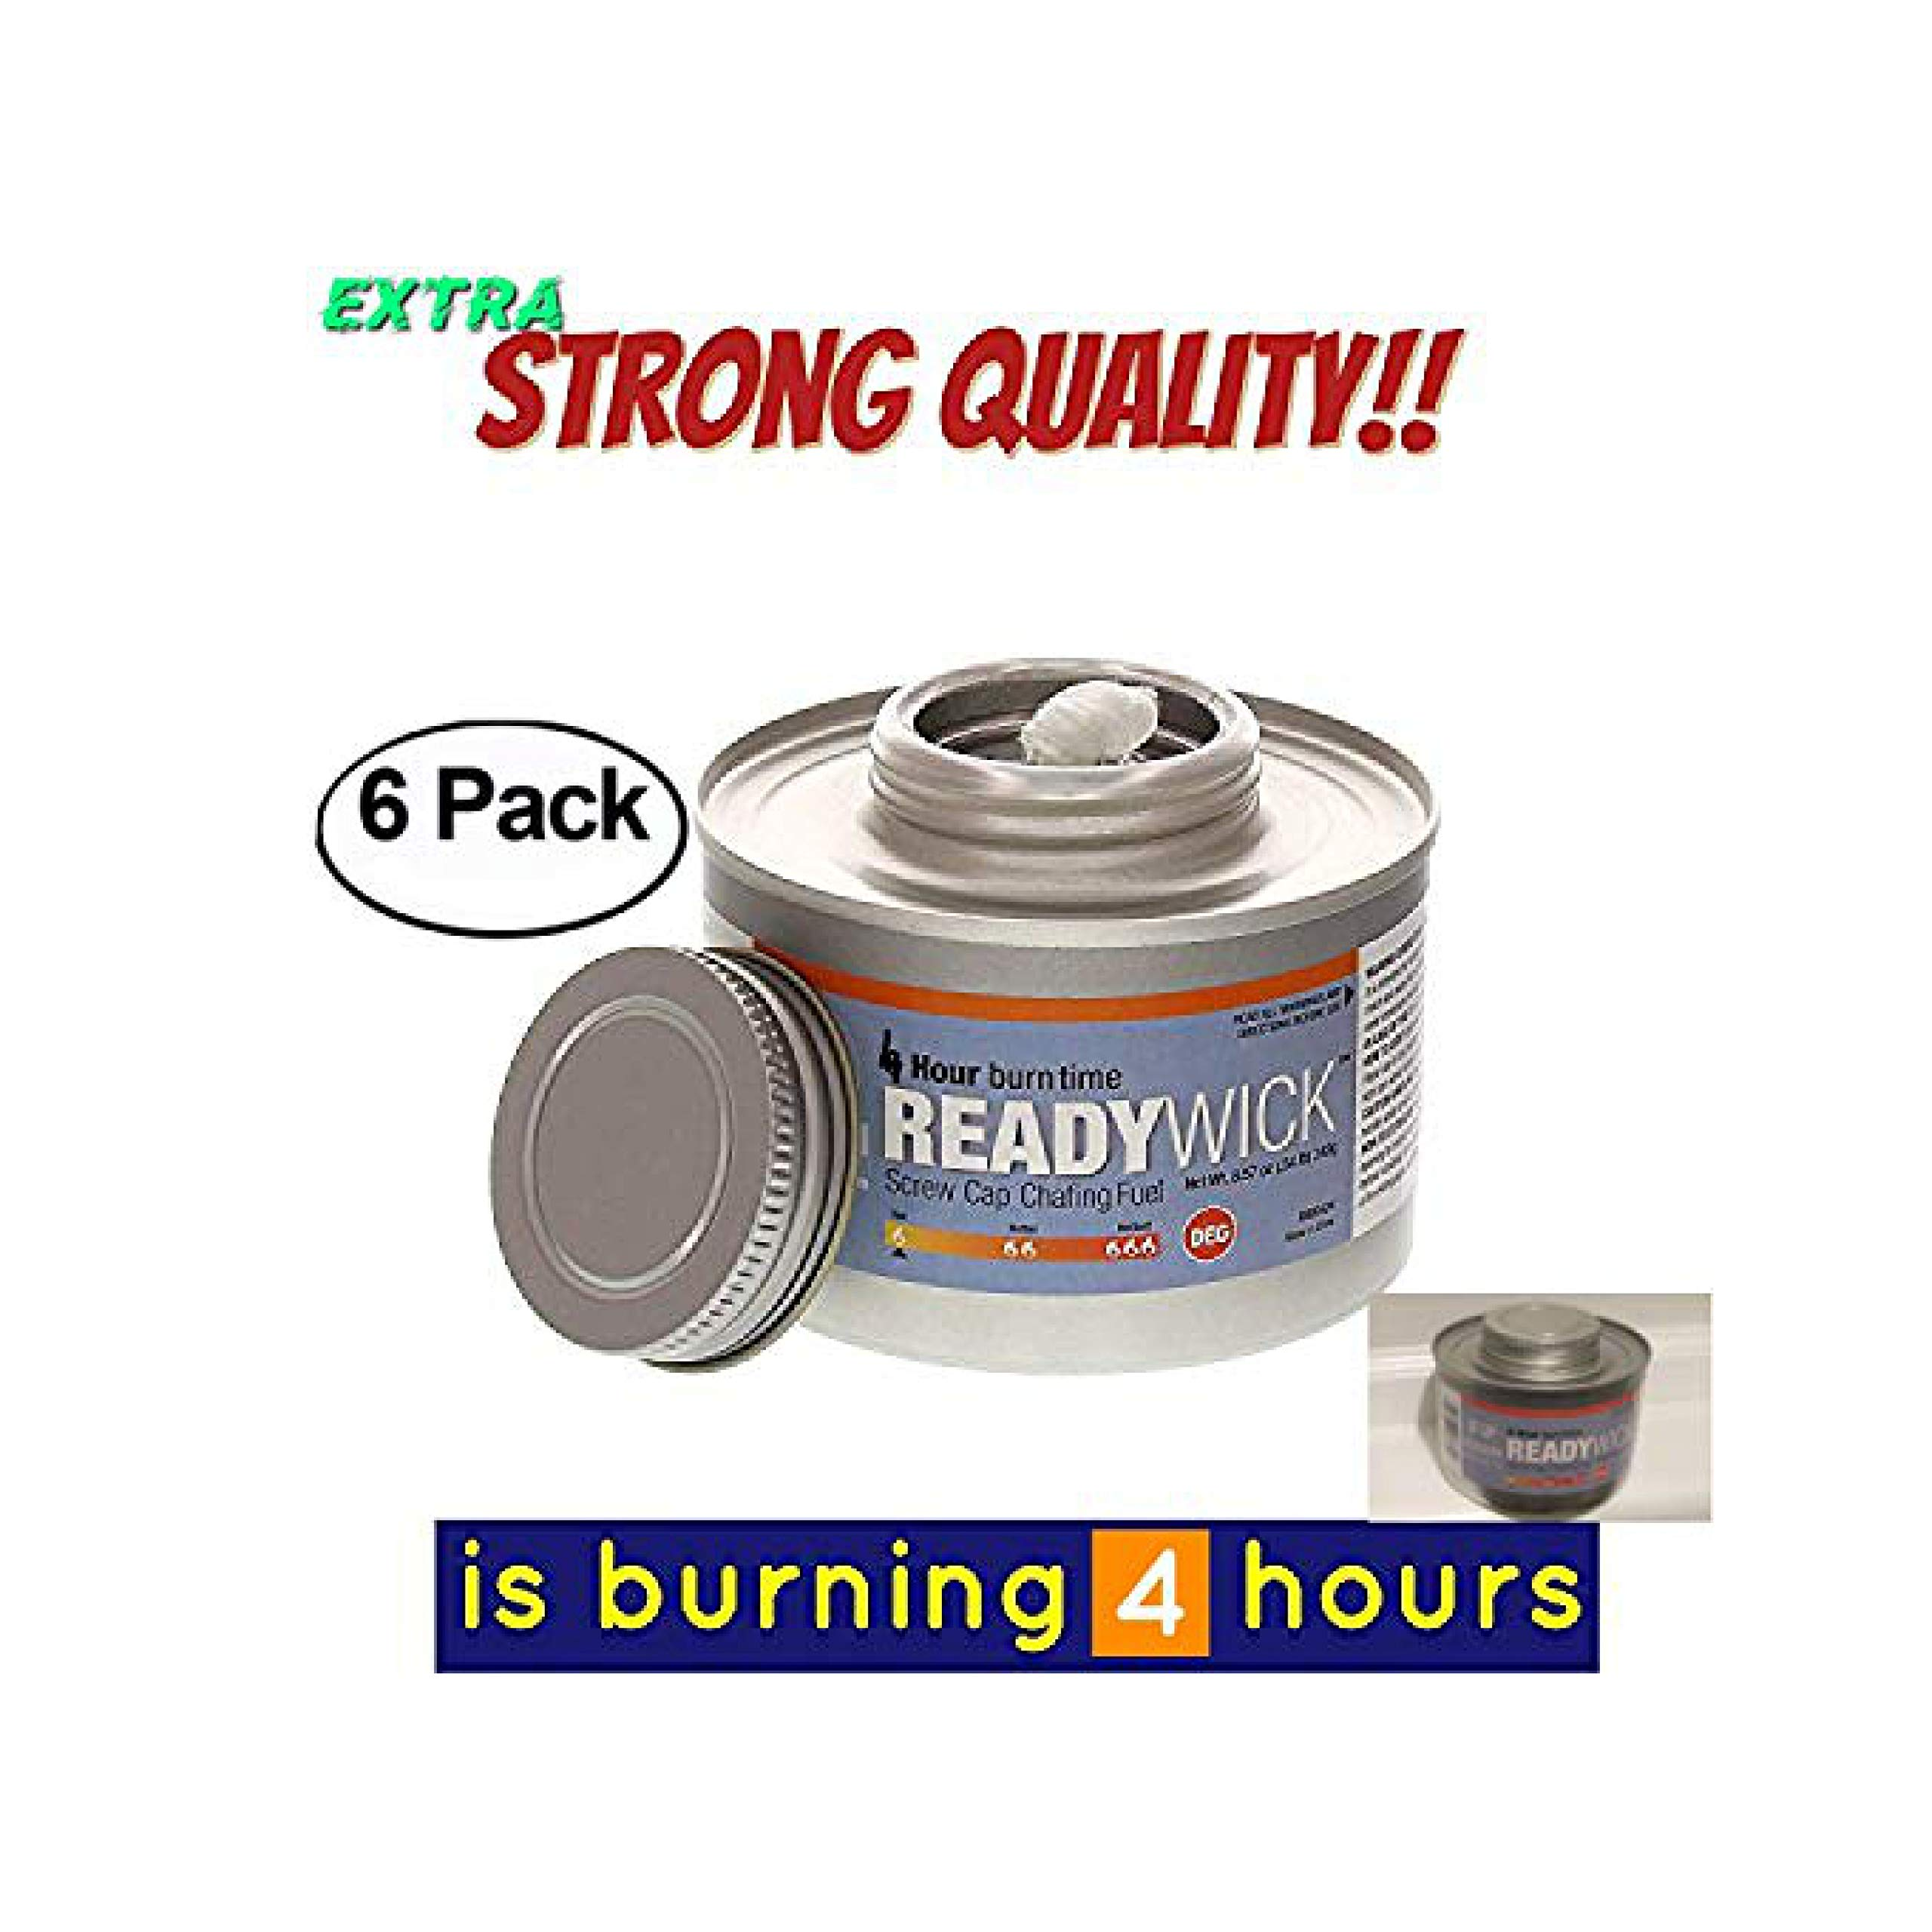 chafing fuel 4 hour,Chafing Gel Dish Fuel 6 Cans, Entertainment Cooking Fuel gel fuel cans, 4 hours cooking fuel cans, cooking fuel gel (6, 4 Hour) by The Bakers Pantry